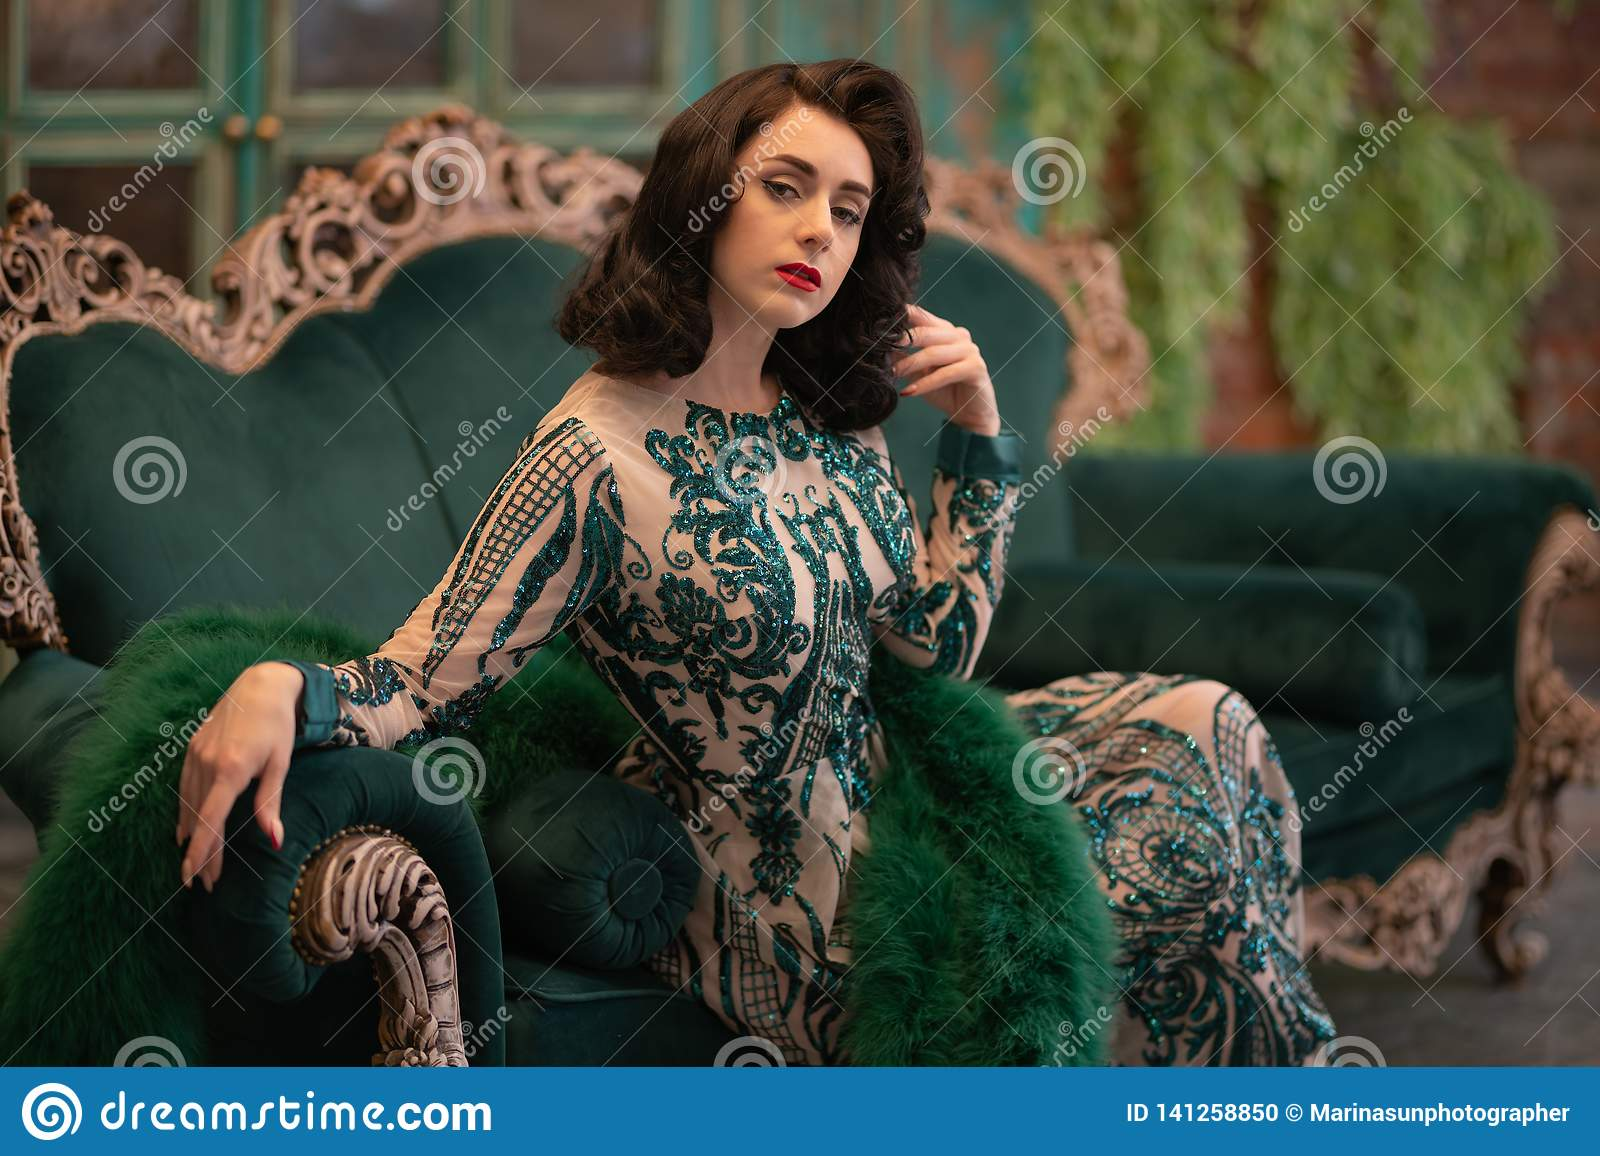 a78e569109 Elegant caucasian girl in a luxurious long sequins lace dress with a green  fluffy boa in